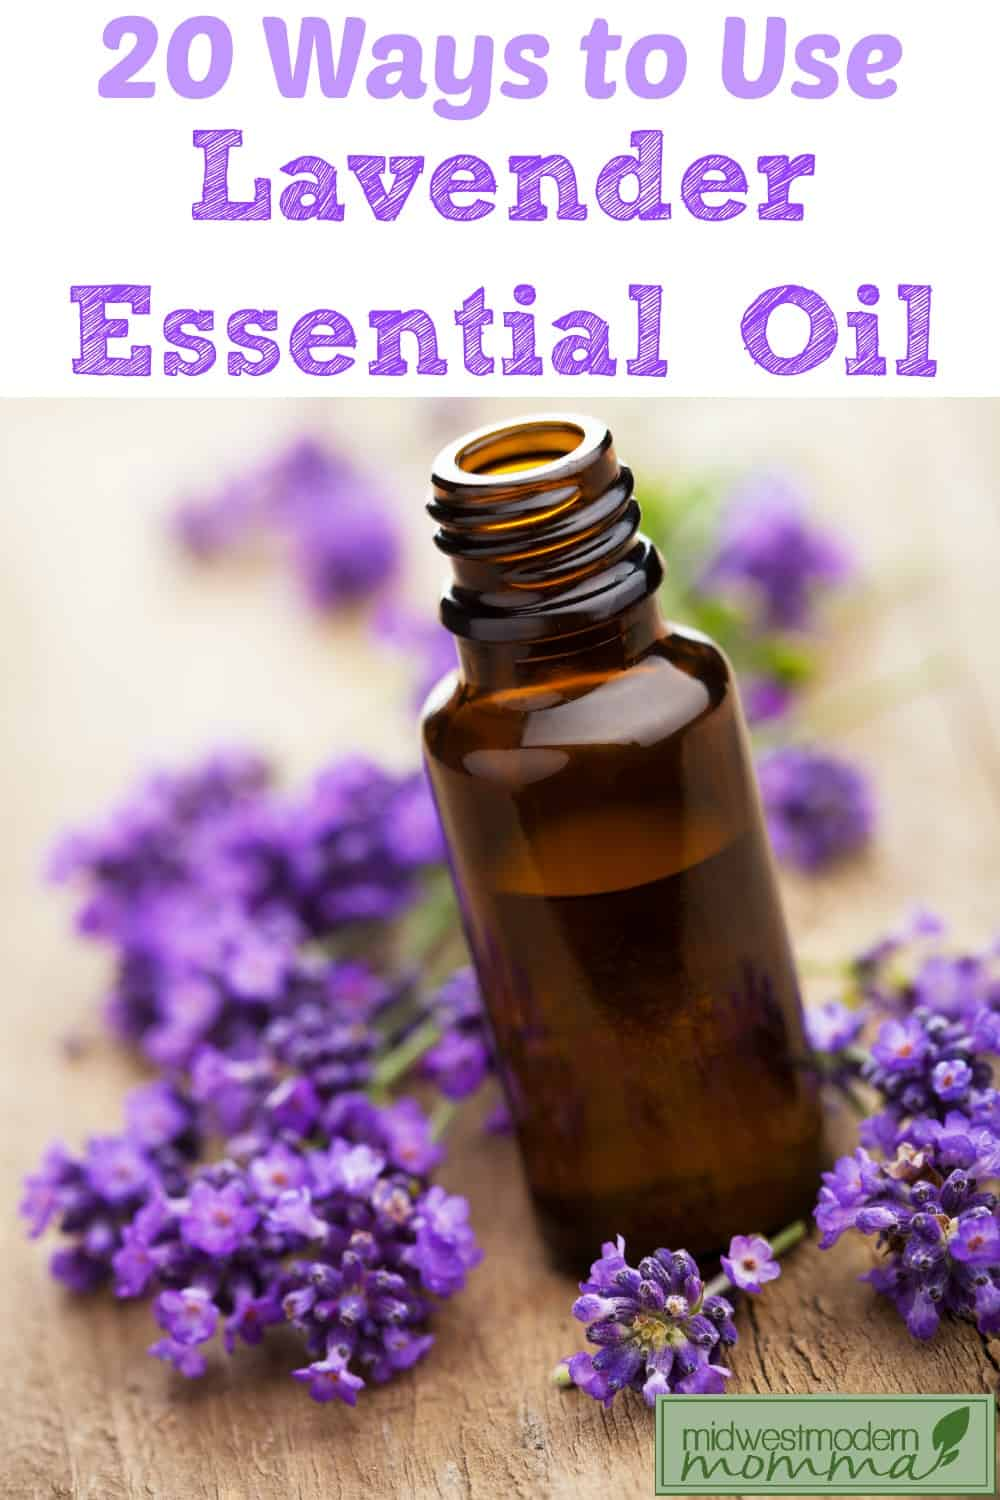 20 Ways to Use Lavender Essential Oil